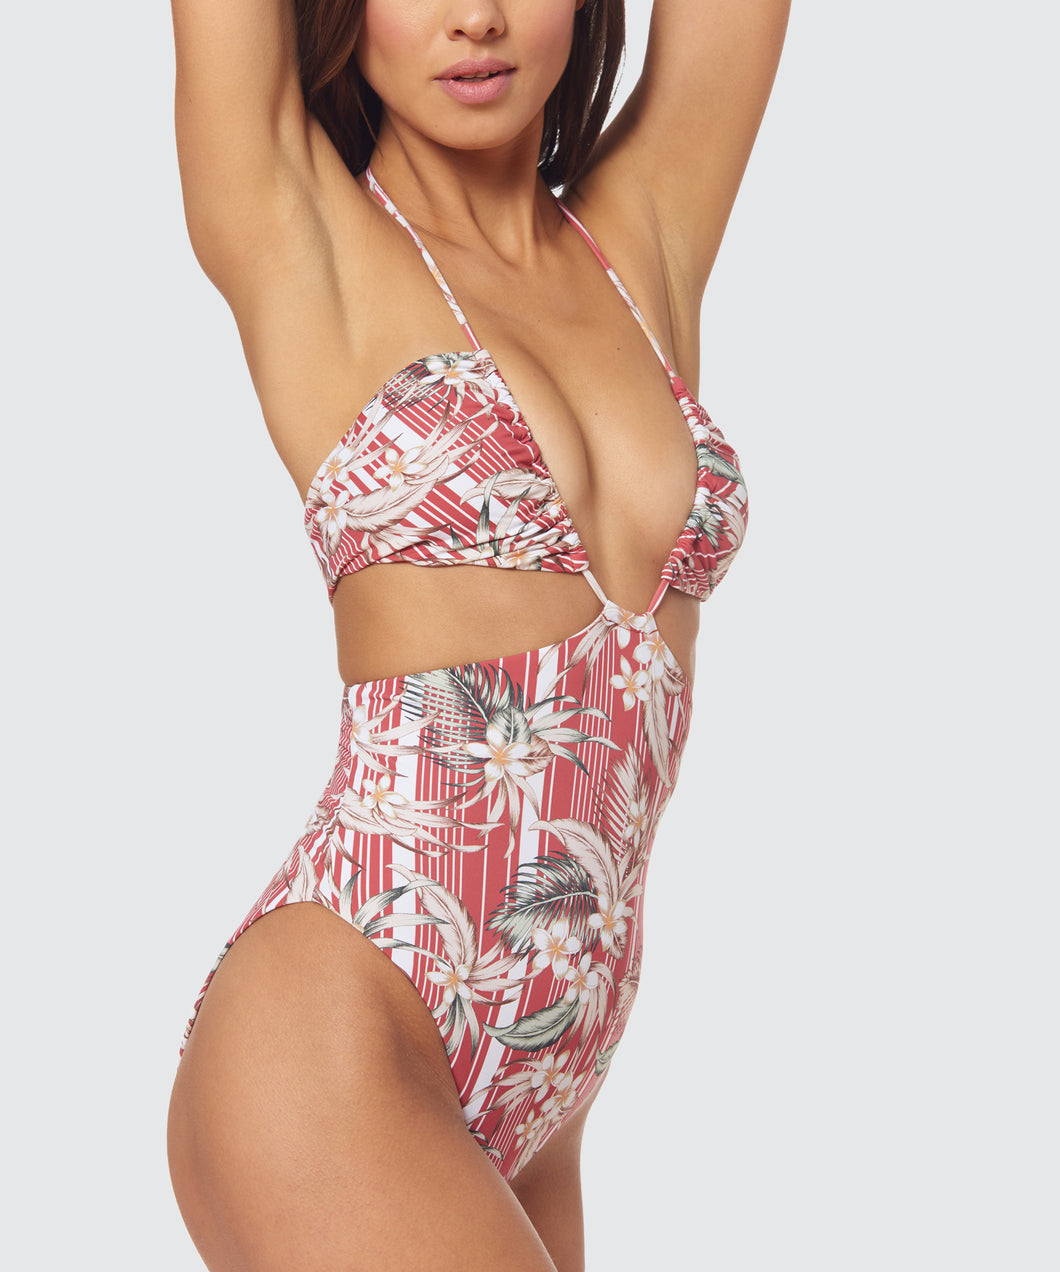 PLAYA TRAIL LACE BACK ONE PIECE ROSE -   Dolce Vita